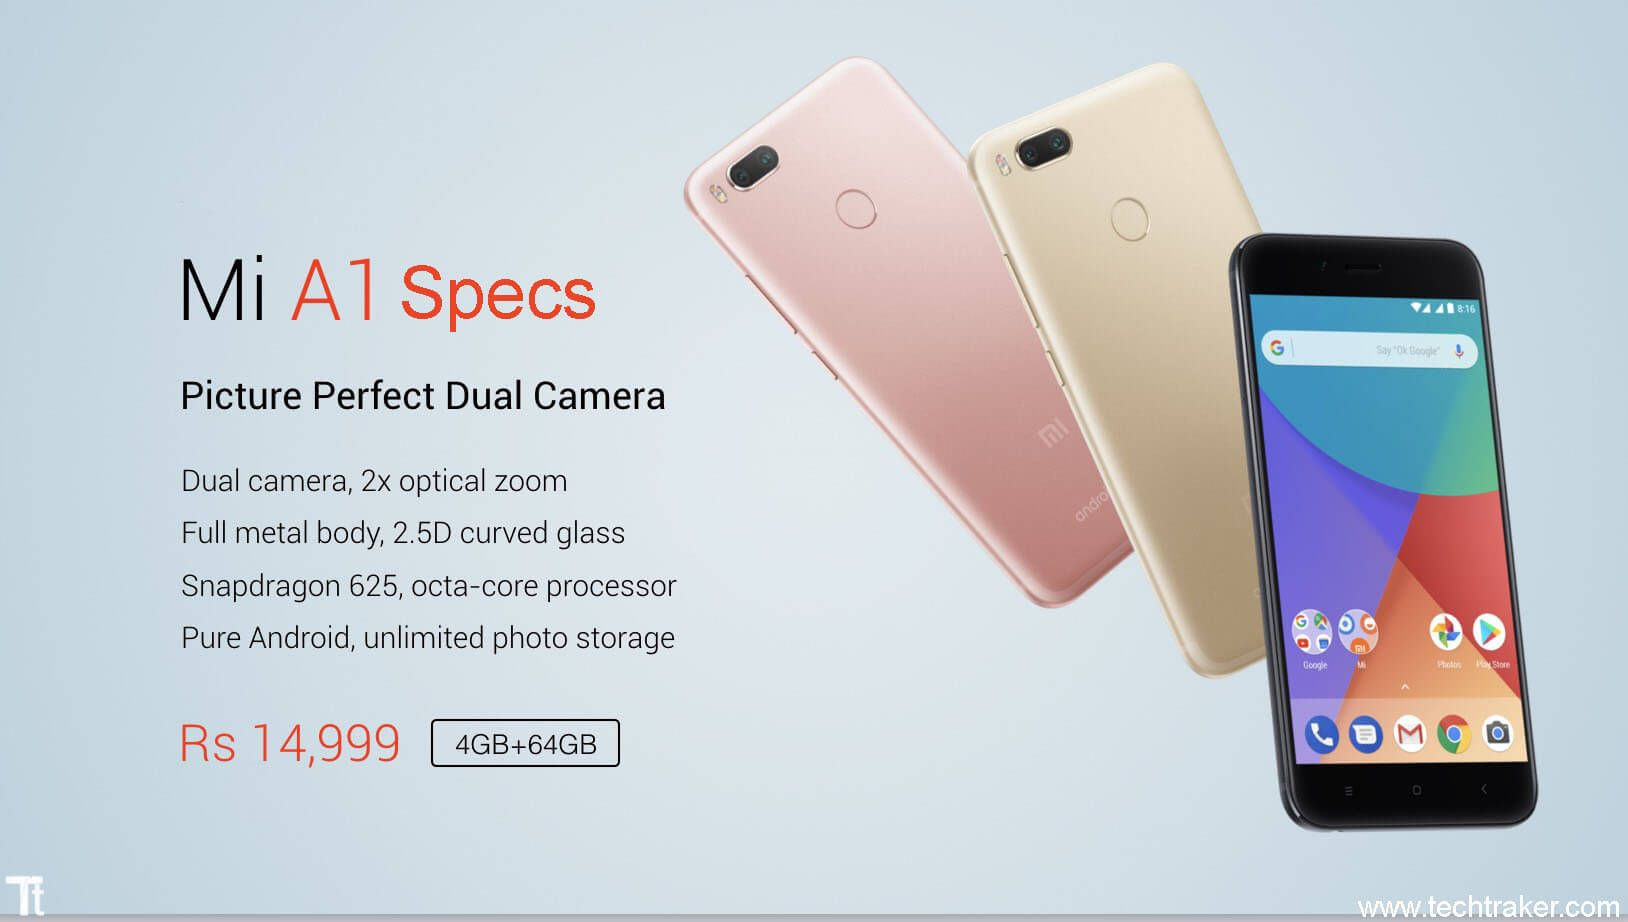 Specification Of Xiaomi Mi A1 5x General Operating System Android 7 1 2 Nougat Planned Upgrade To Android 8 0 Oreo Dev Pure Products Xiaomi Usb Radio